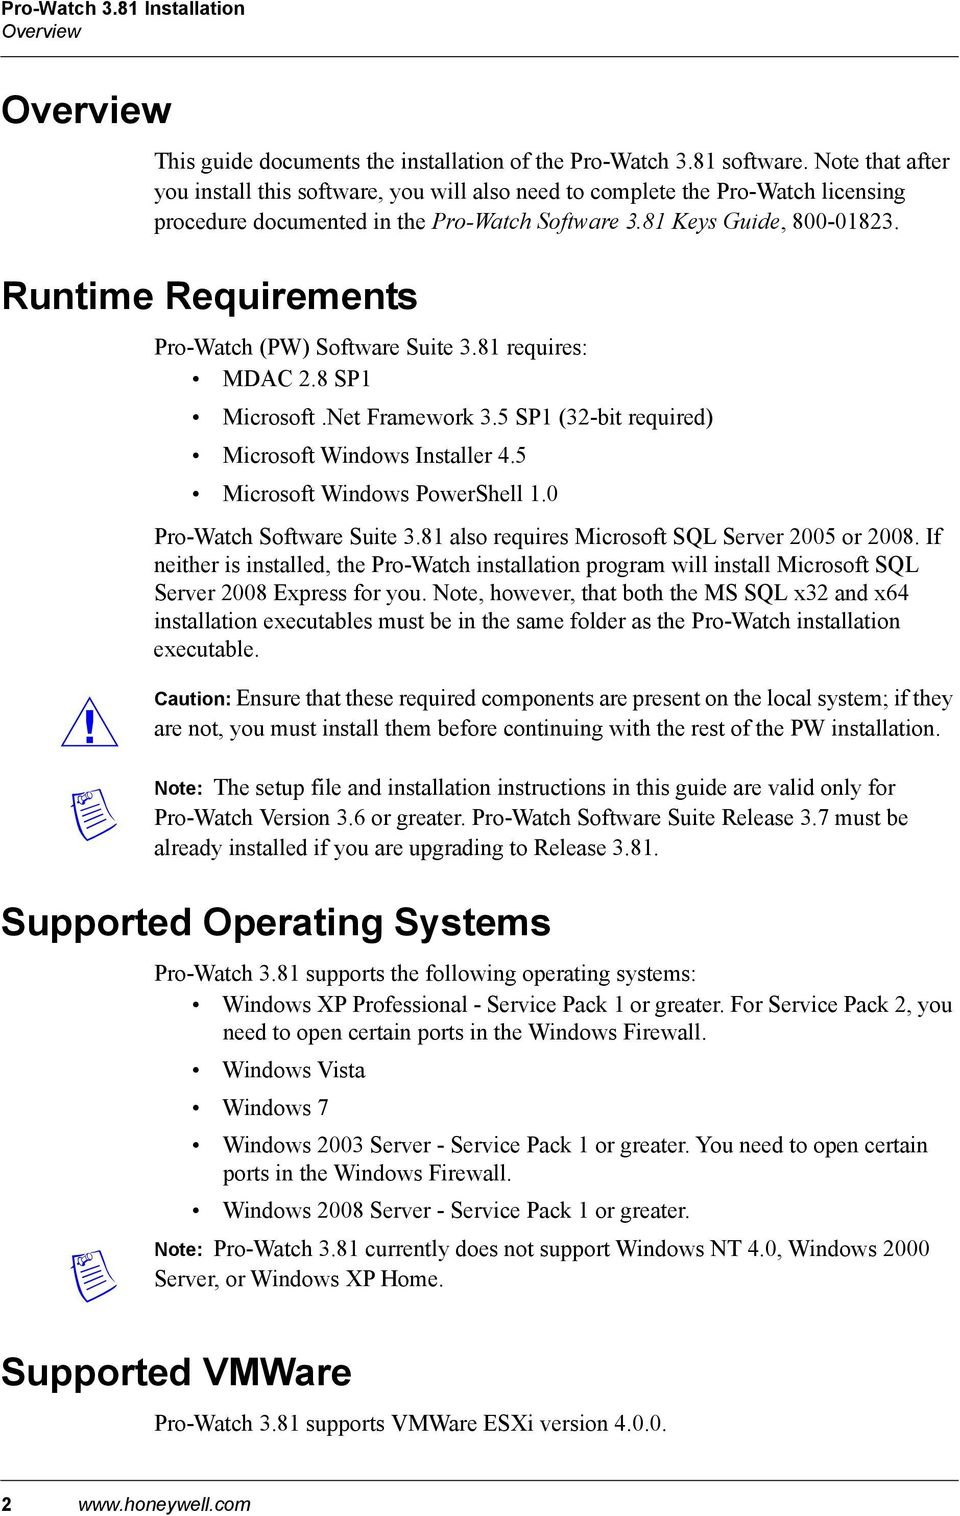 Runtime Requirements Pro-Watch (PW) Software Suite 3.81 requires: MDAC 2.8 SP1 Microsoft.Net Framework 3.5 SP1 (32-bit required) Microsoft Windows Installer 4.5 Microsoft Windows PowerShell 1.